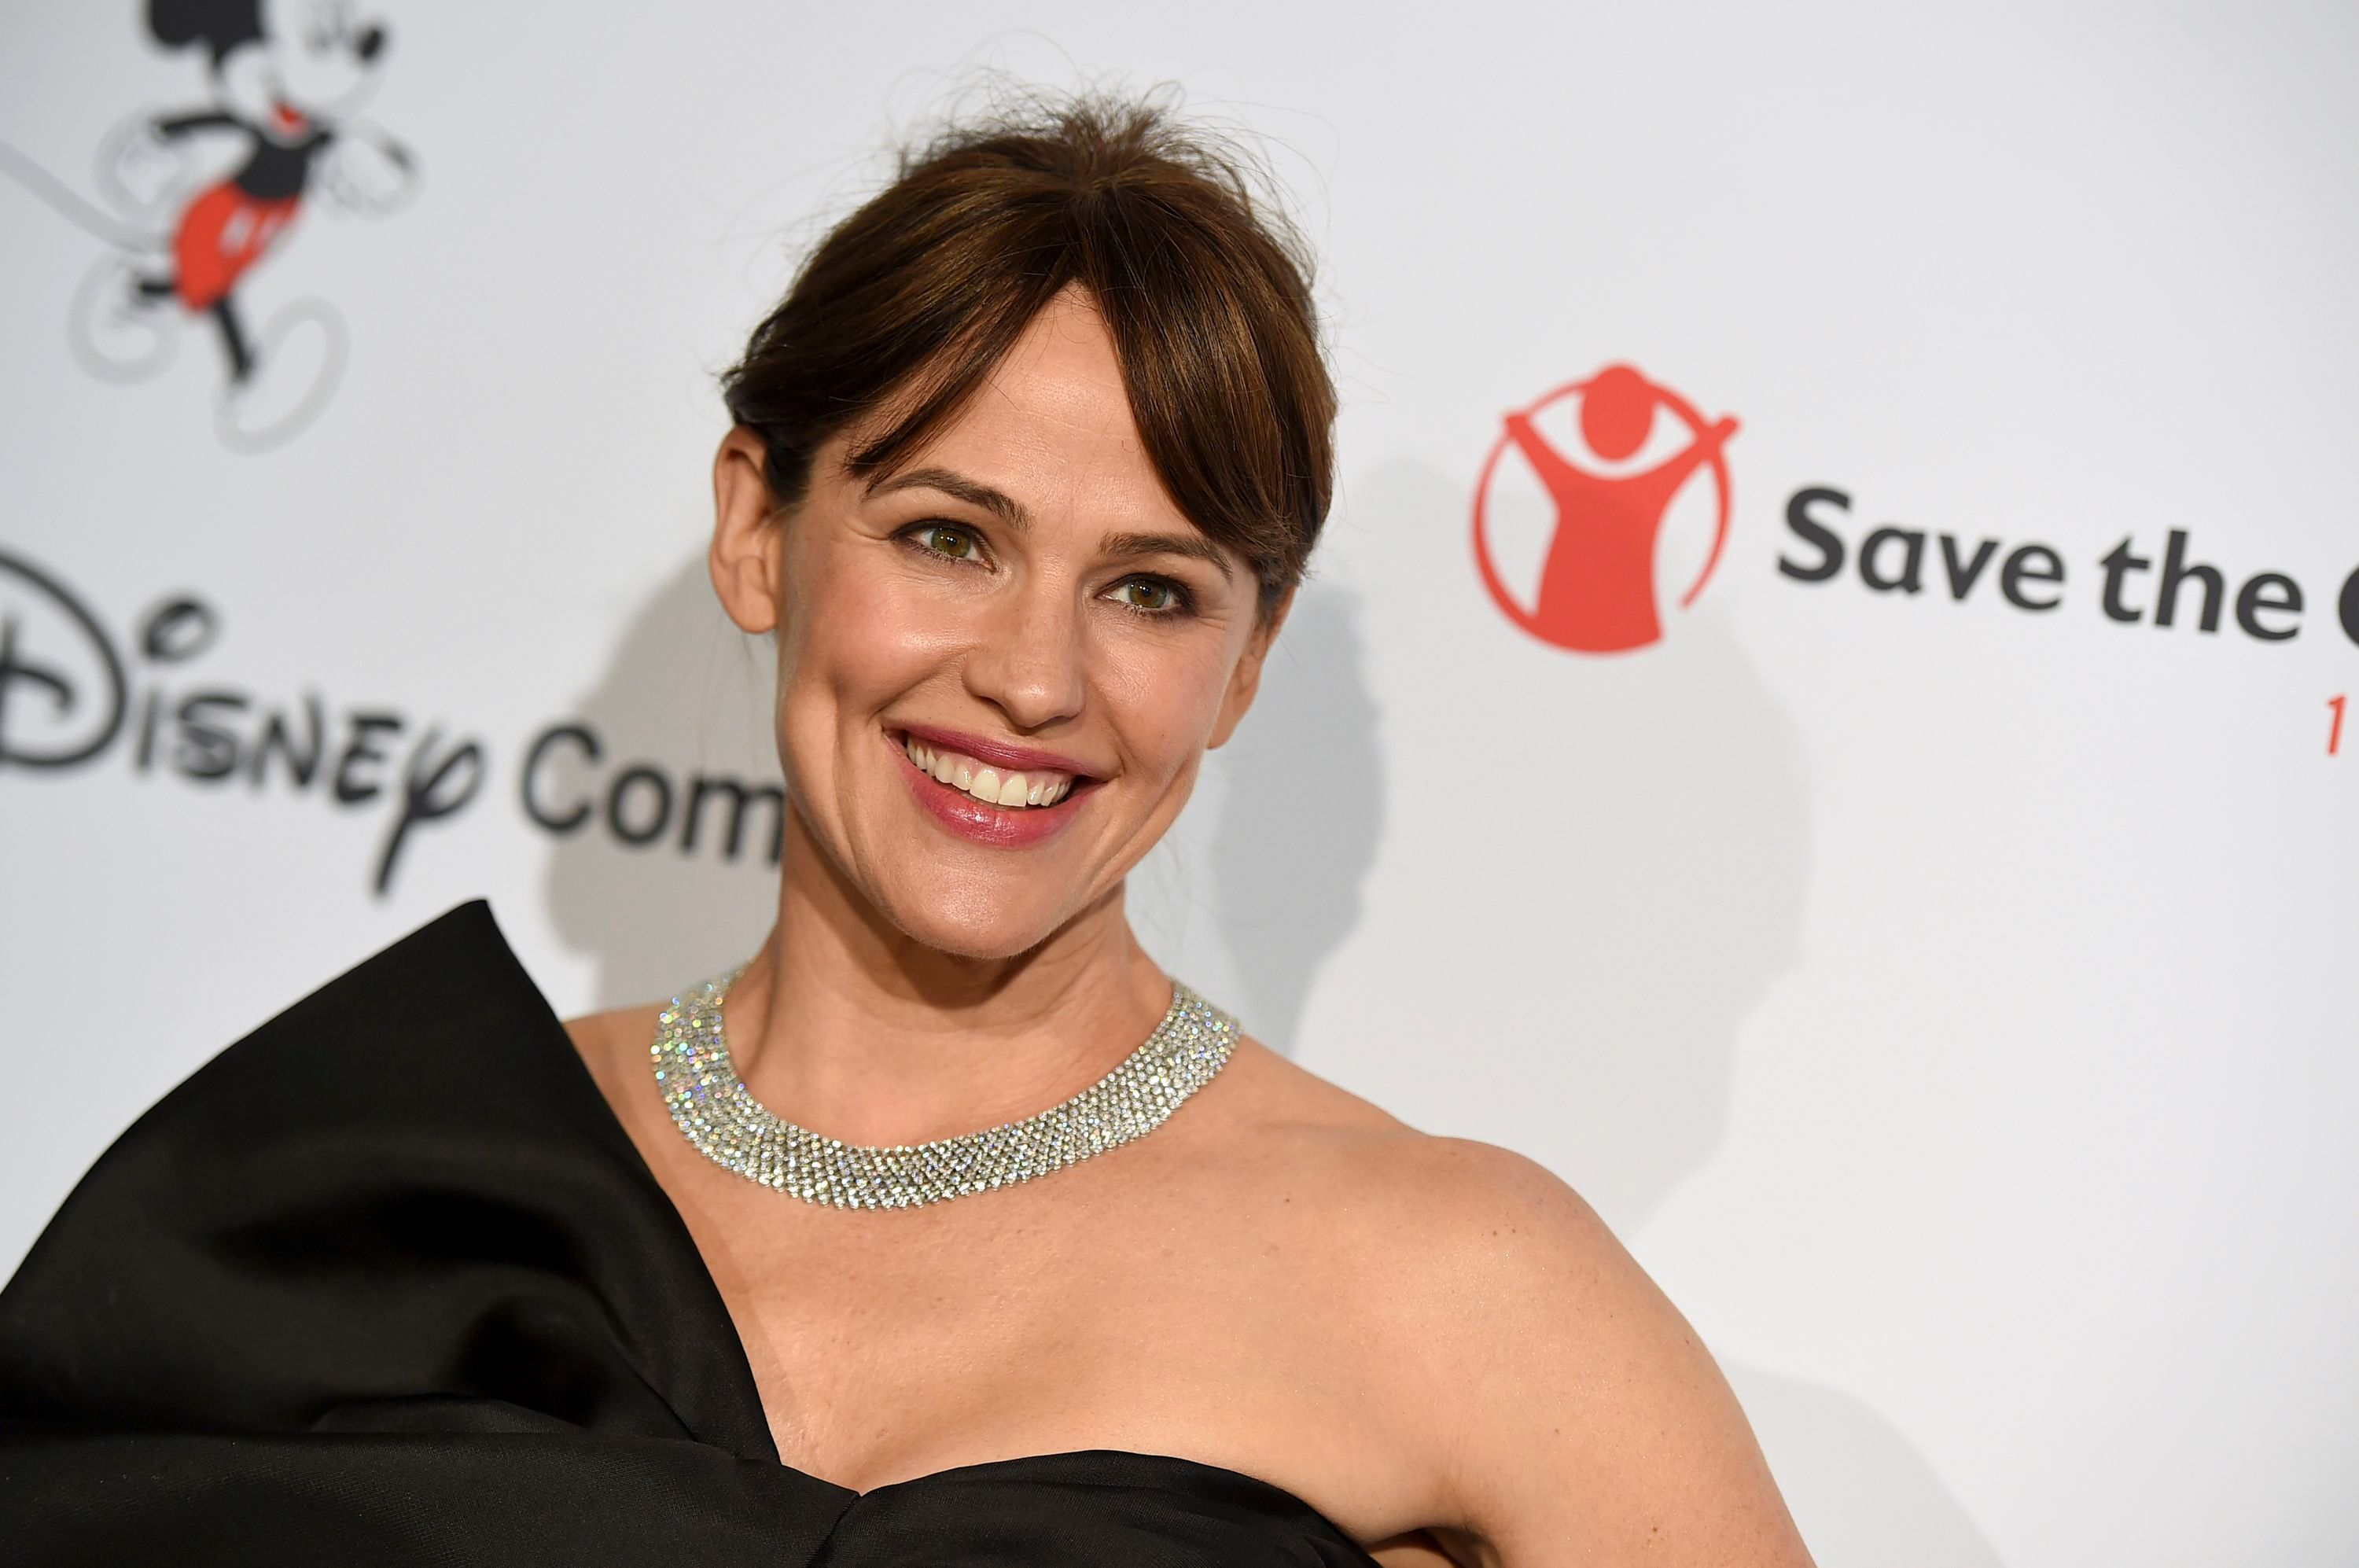 Jennifer Garner Shares Video of Mammogram Experience for Breast Cancer Awareness Month